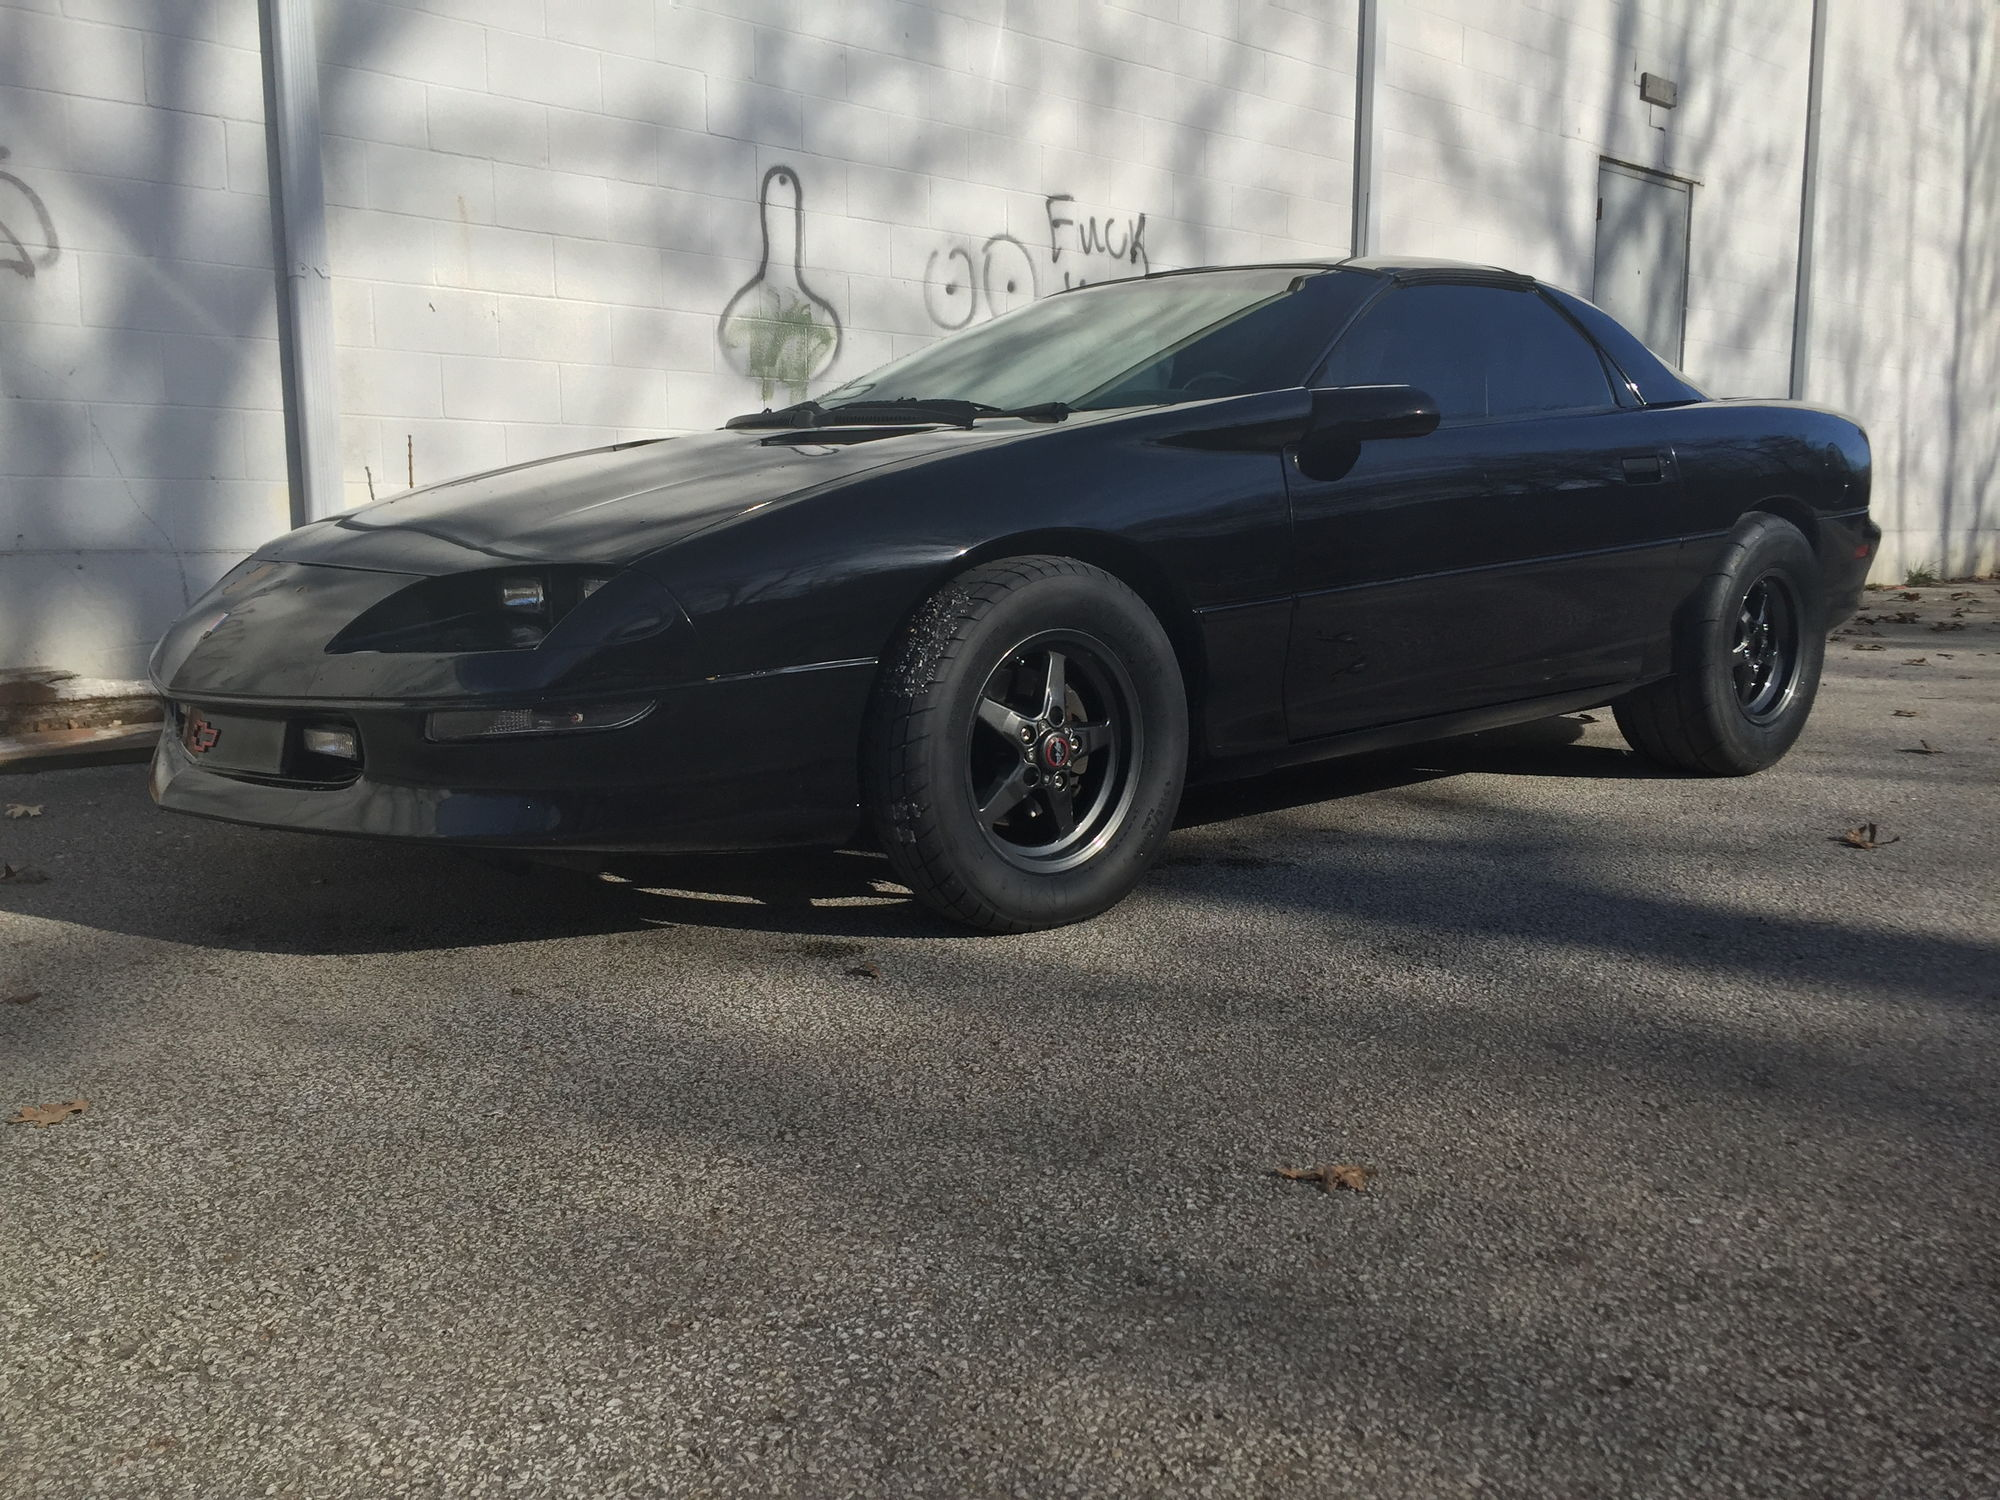 Used Cars Evansville In >> Racestar Grey Bracket Wheels - LS1TECH - Camaro and